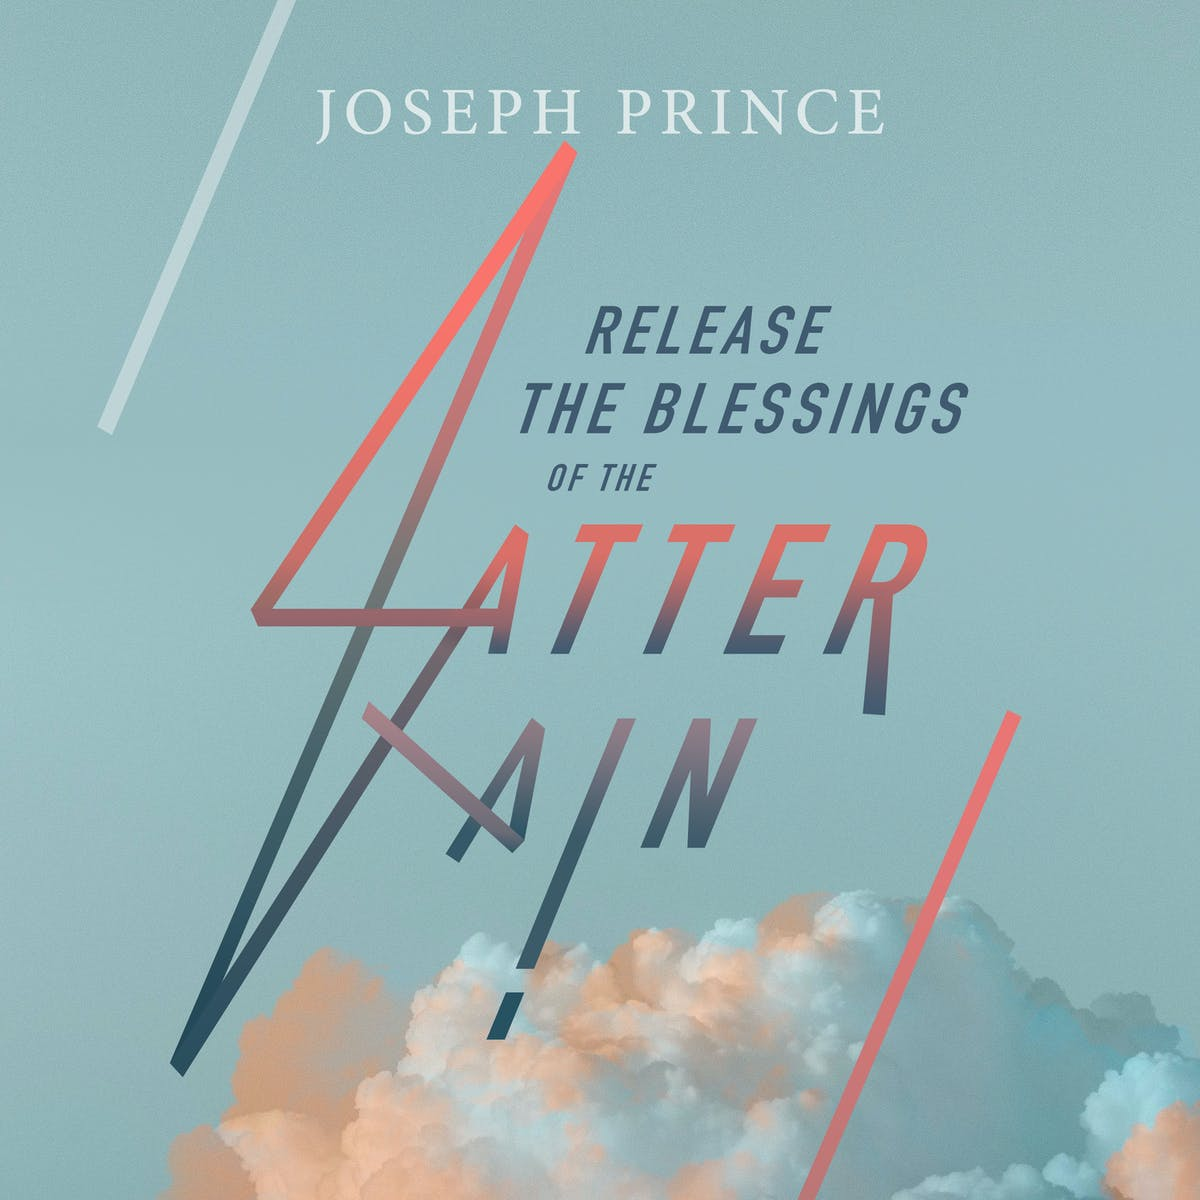 Release The Blessings Of The Latter Rain | Official Joseph Prince